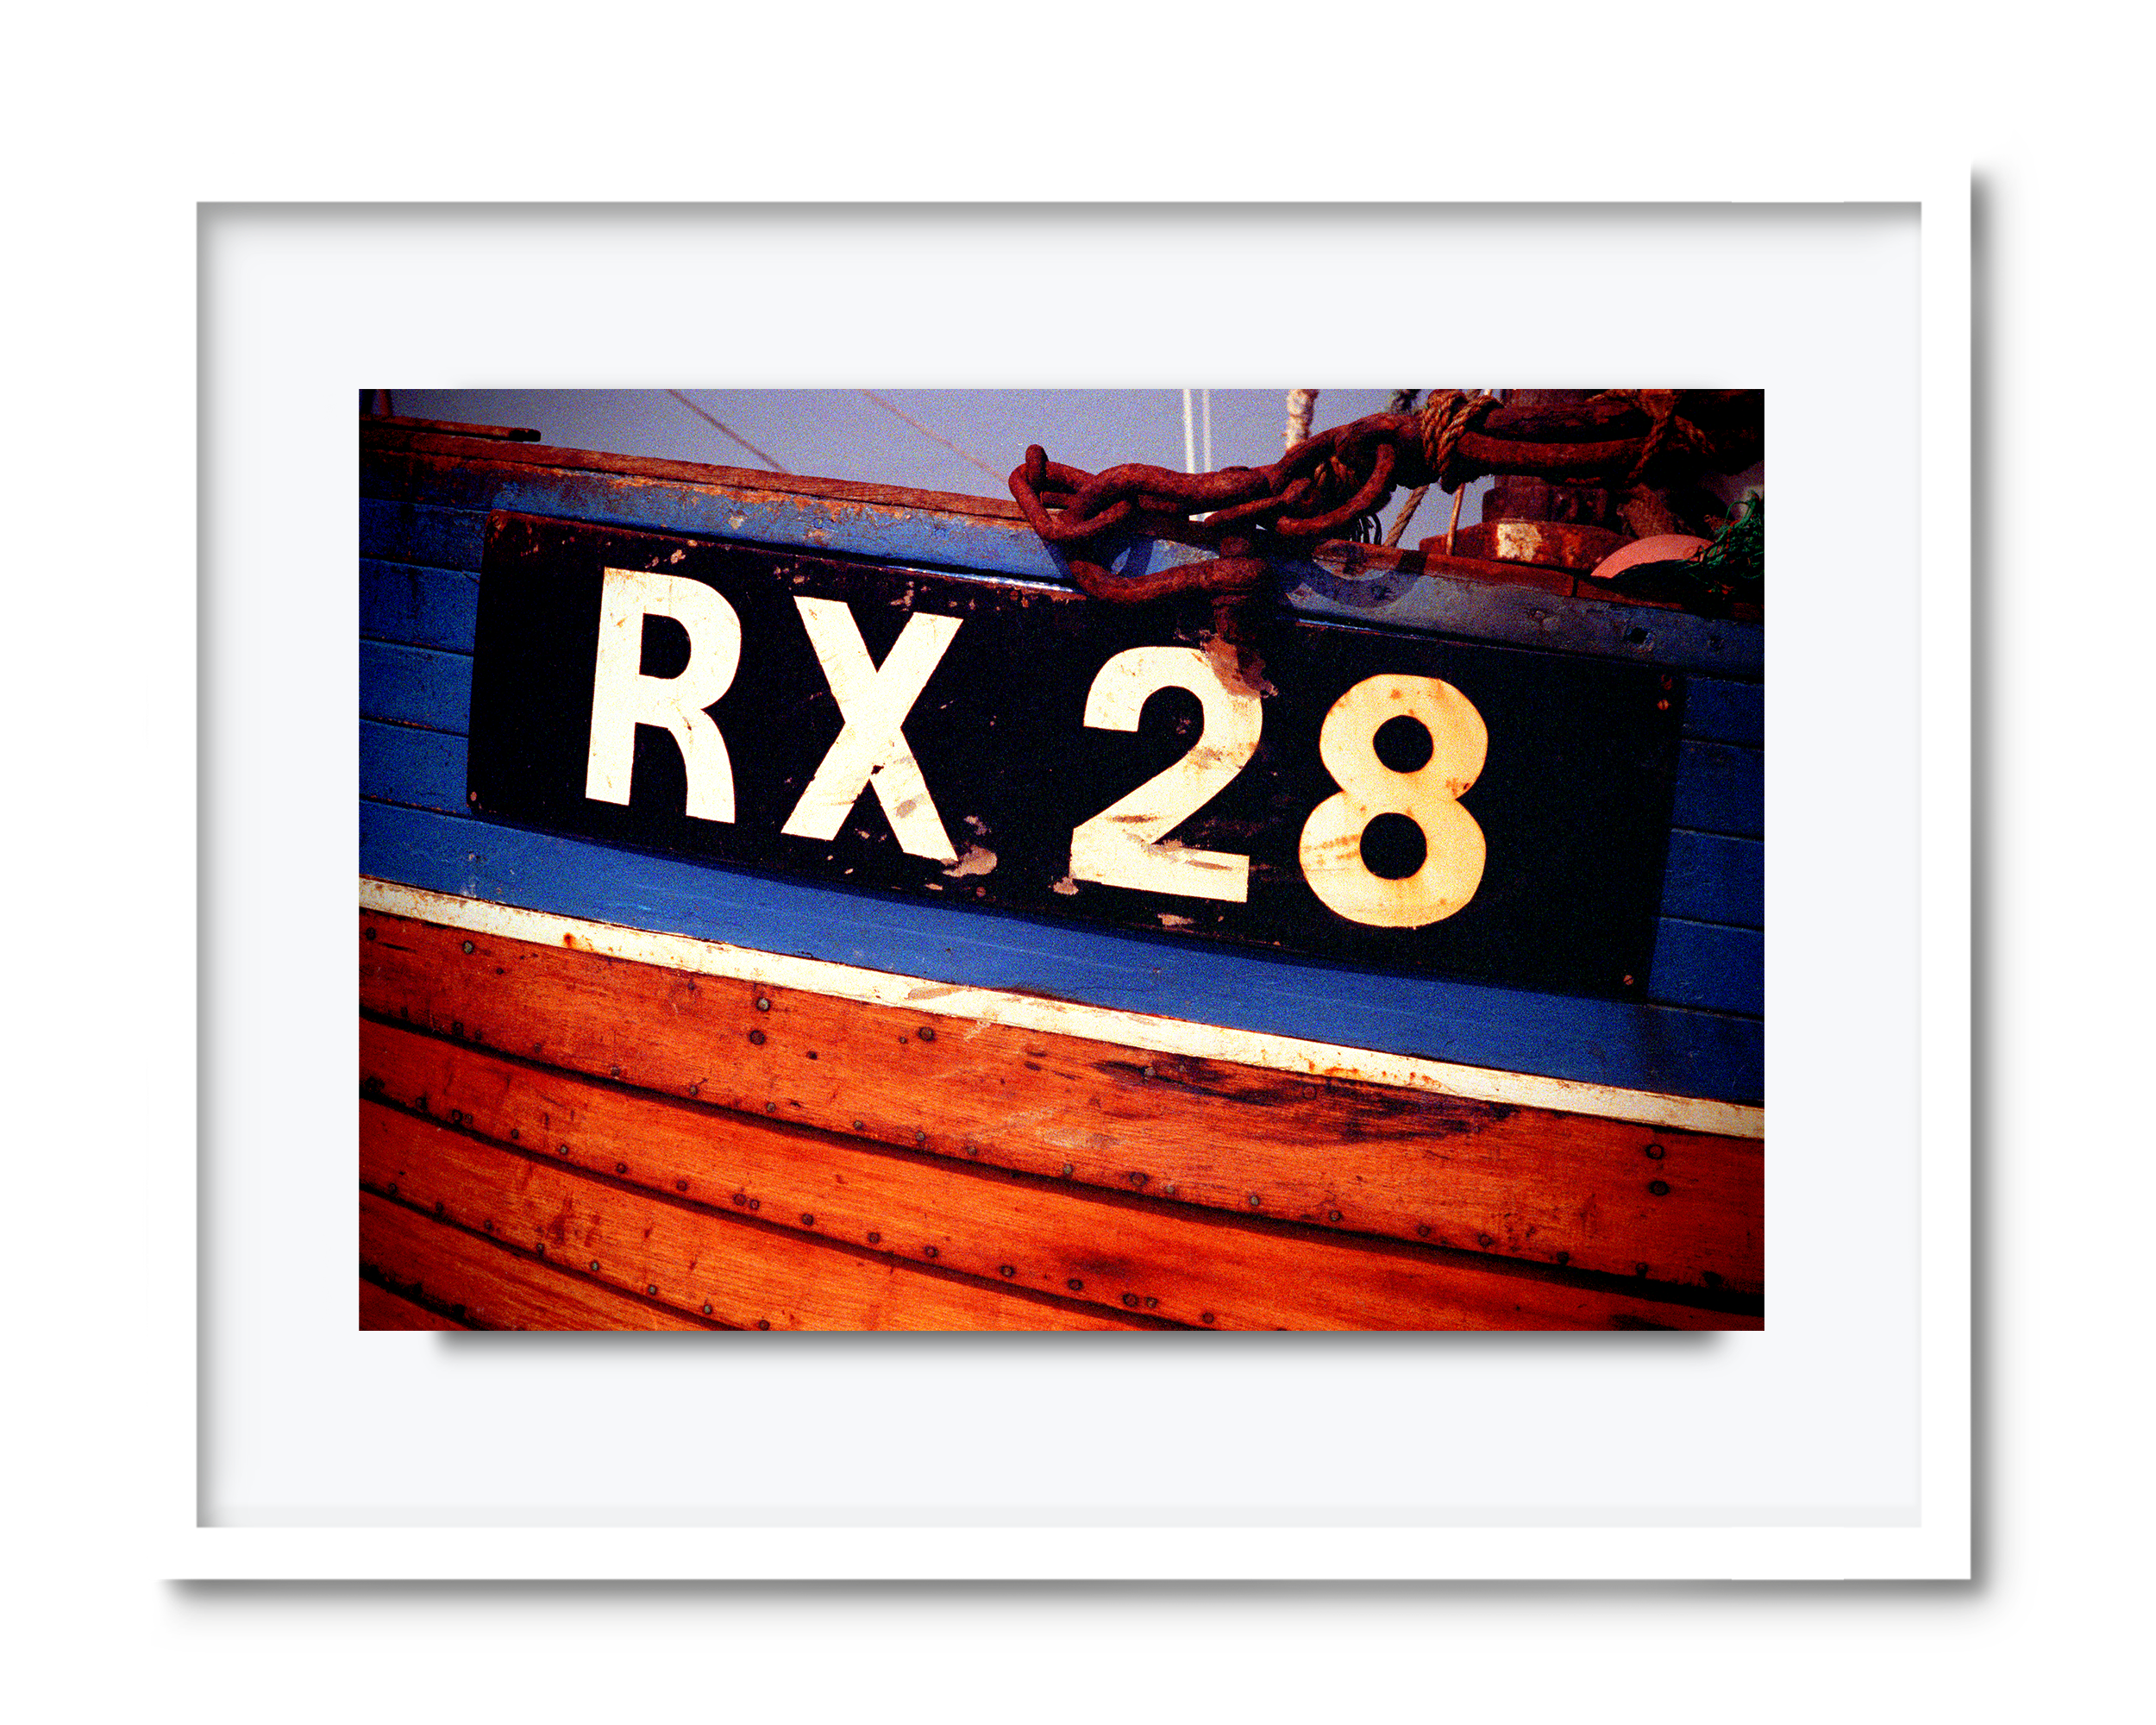 21.david-pearce-old-fishing-boat.png